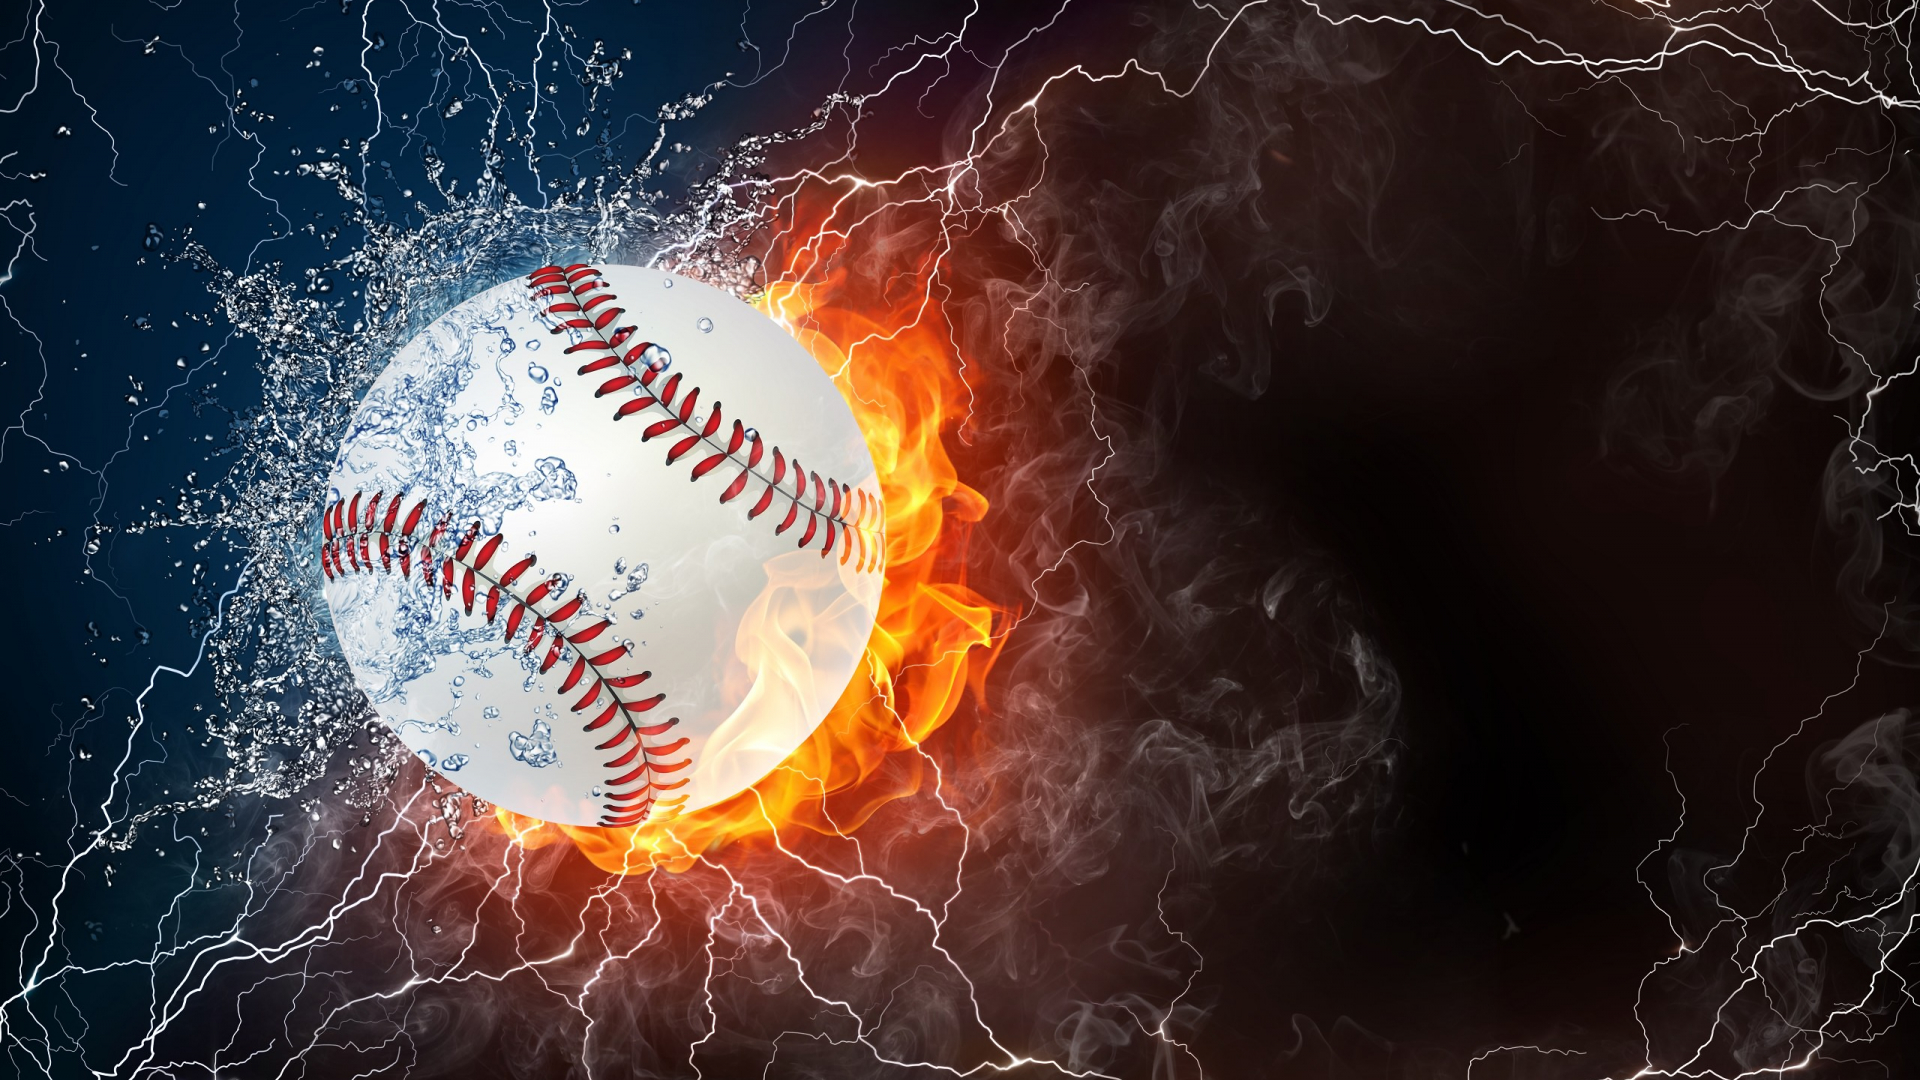 Free Download Cool Sports Backgrounds Baseball Wwwgalleryhipcom